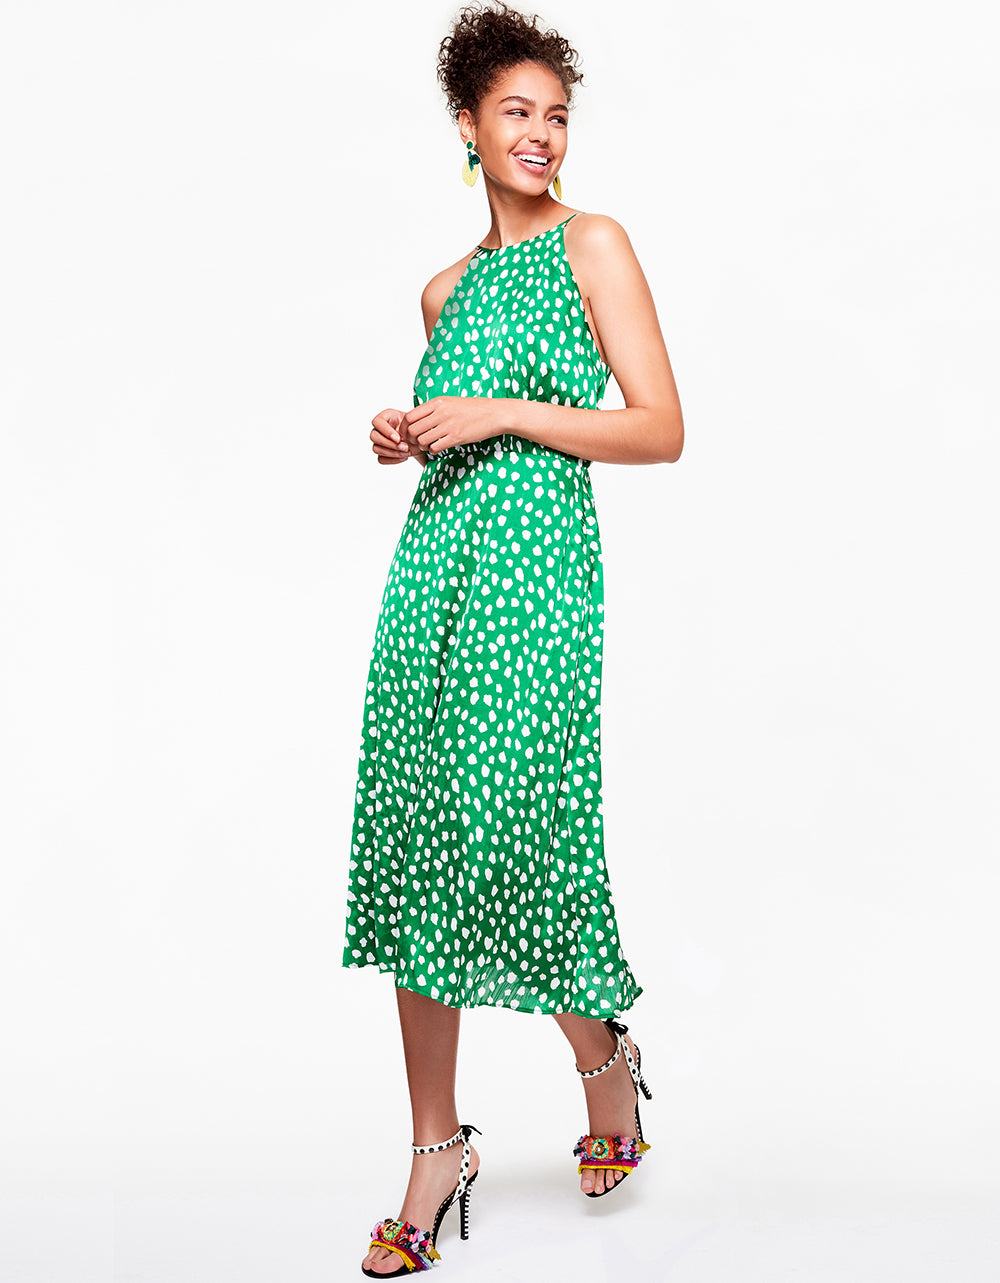 Betsey Johnson ALL THE DOTS DRESS in GREEN MULTI